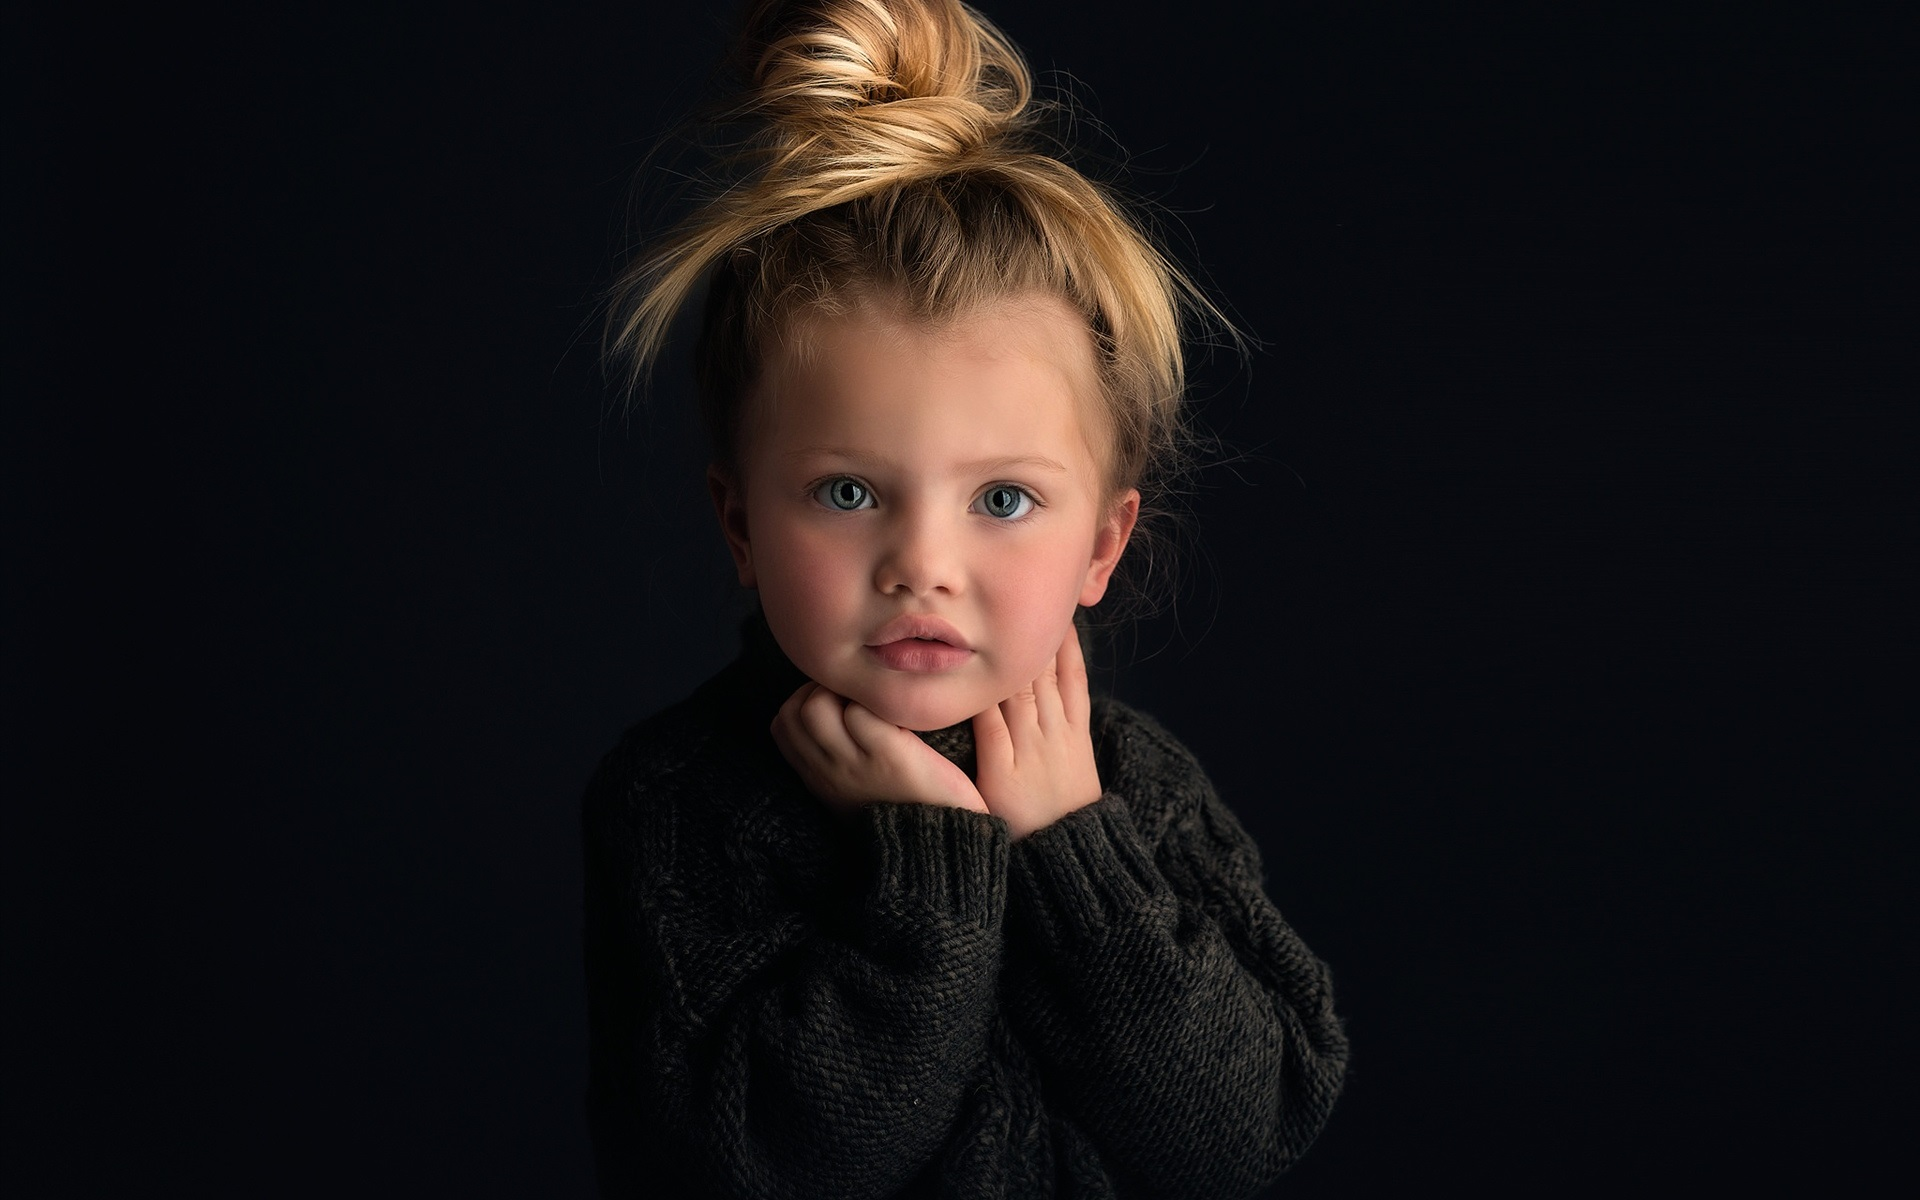 Wallpaper Cute Baby Girl Portrait Blonde Black Background 1920x1200 Hd Picture Image